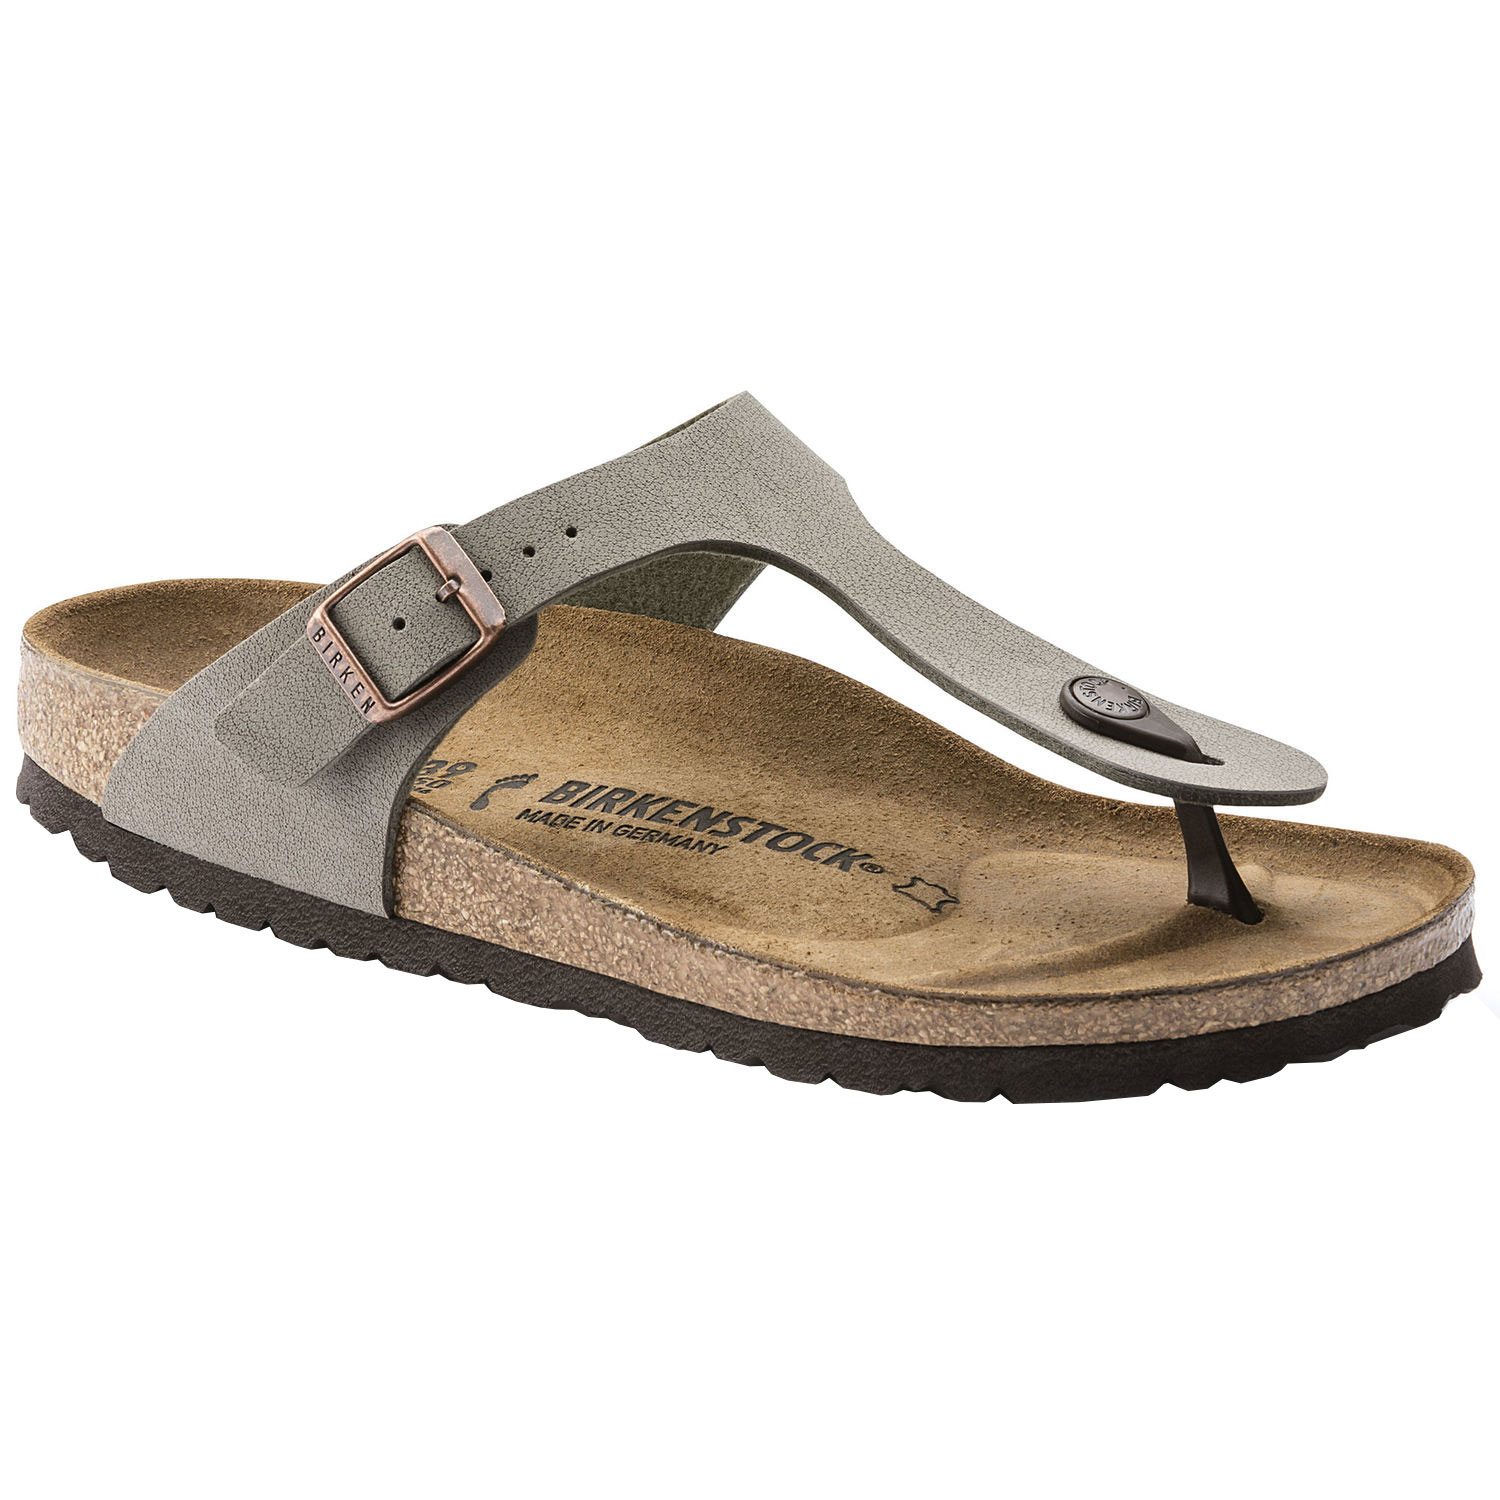 Silver Birkenstock Mayari Italy Sandals With Arch Support